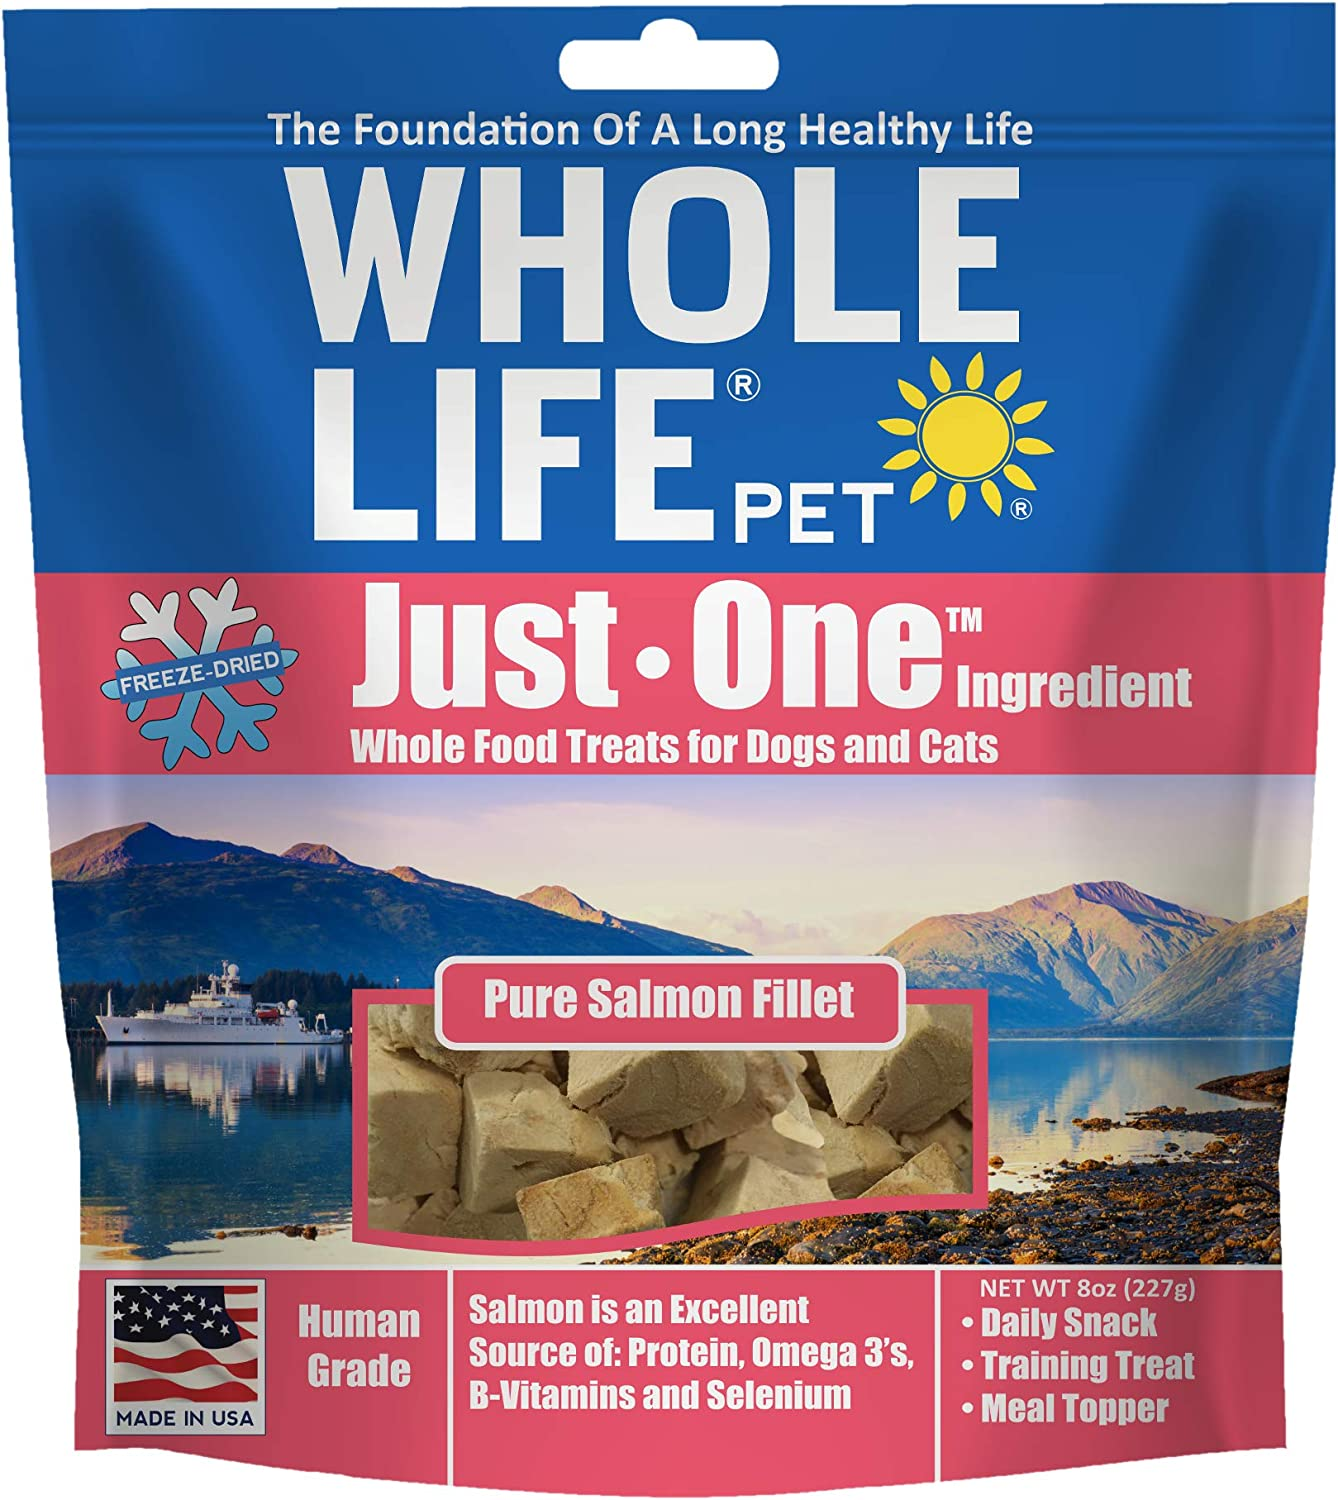 Whole Life Pet Products Healthy Cat and Dog Treats Value Pack, Human-Grade Wild-Caught Salmon, Protein Rich for Training, Picky Eaters, Digestion, Weight Control, Made in the USA, 8 Ounce, Brown, SM014